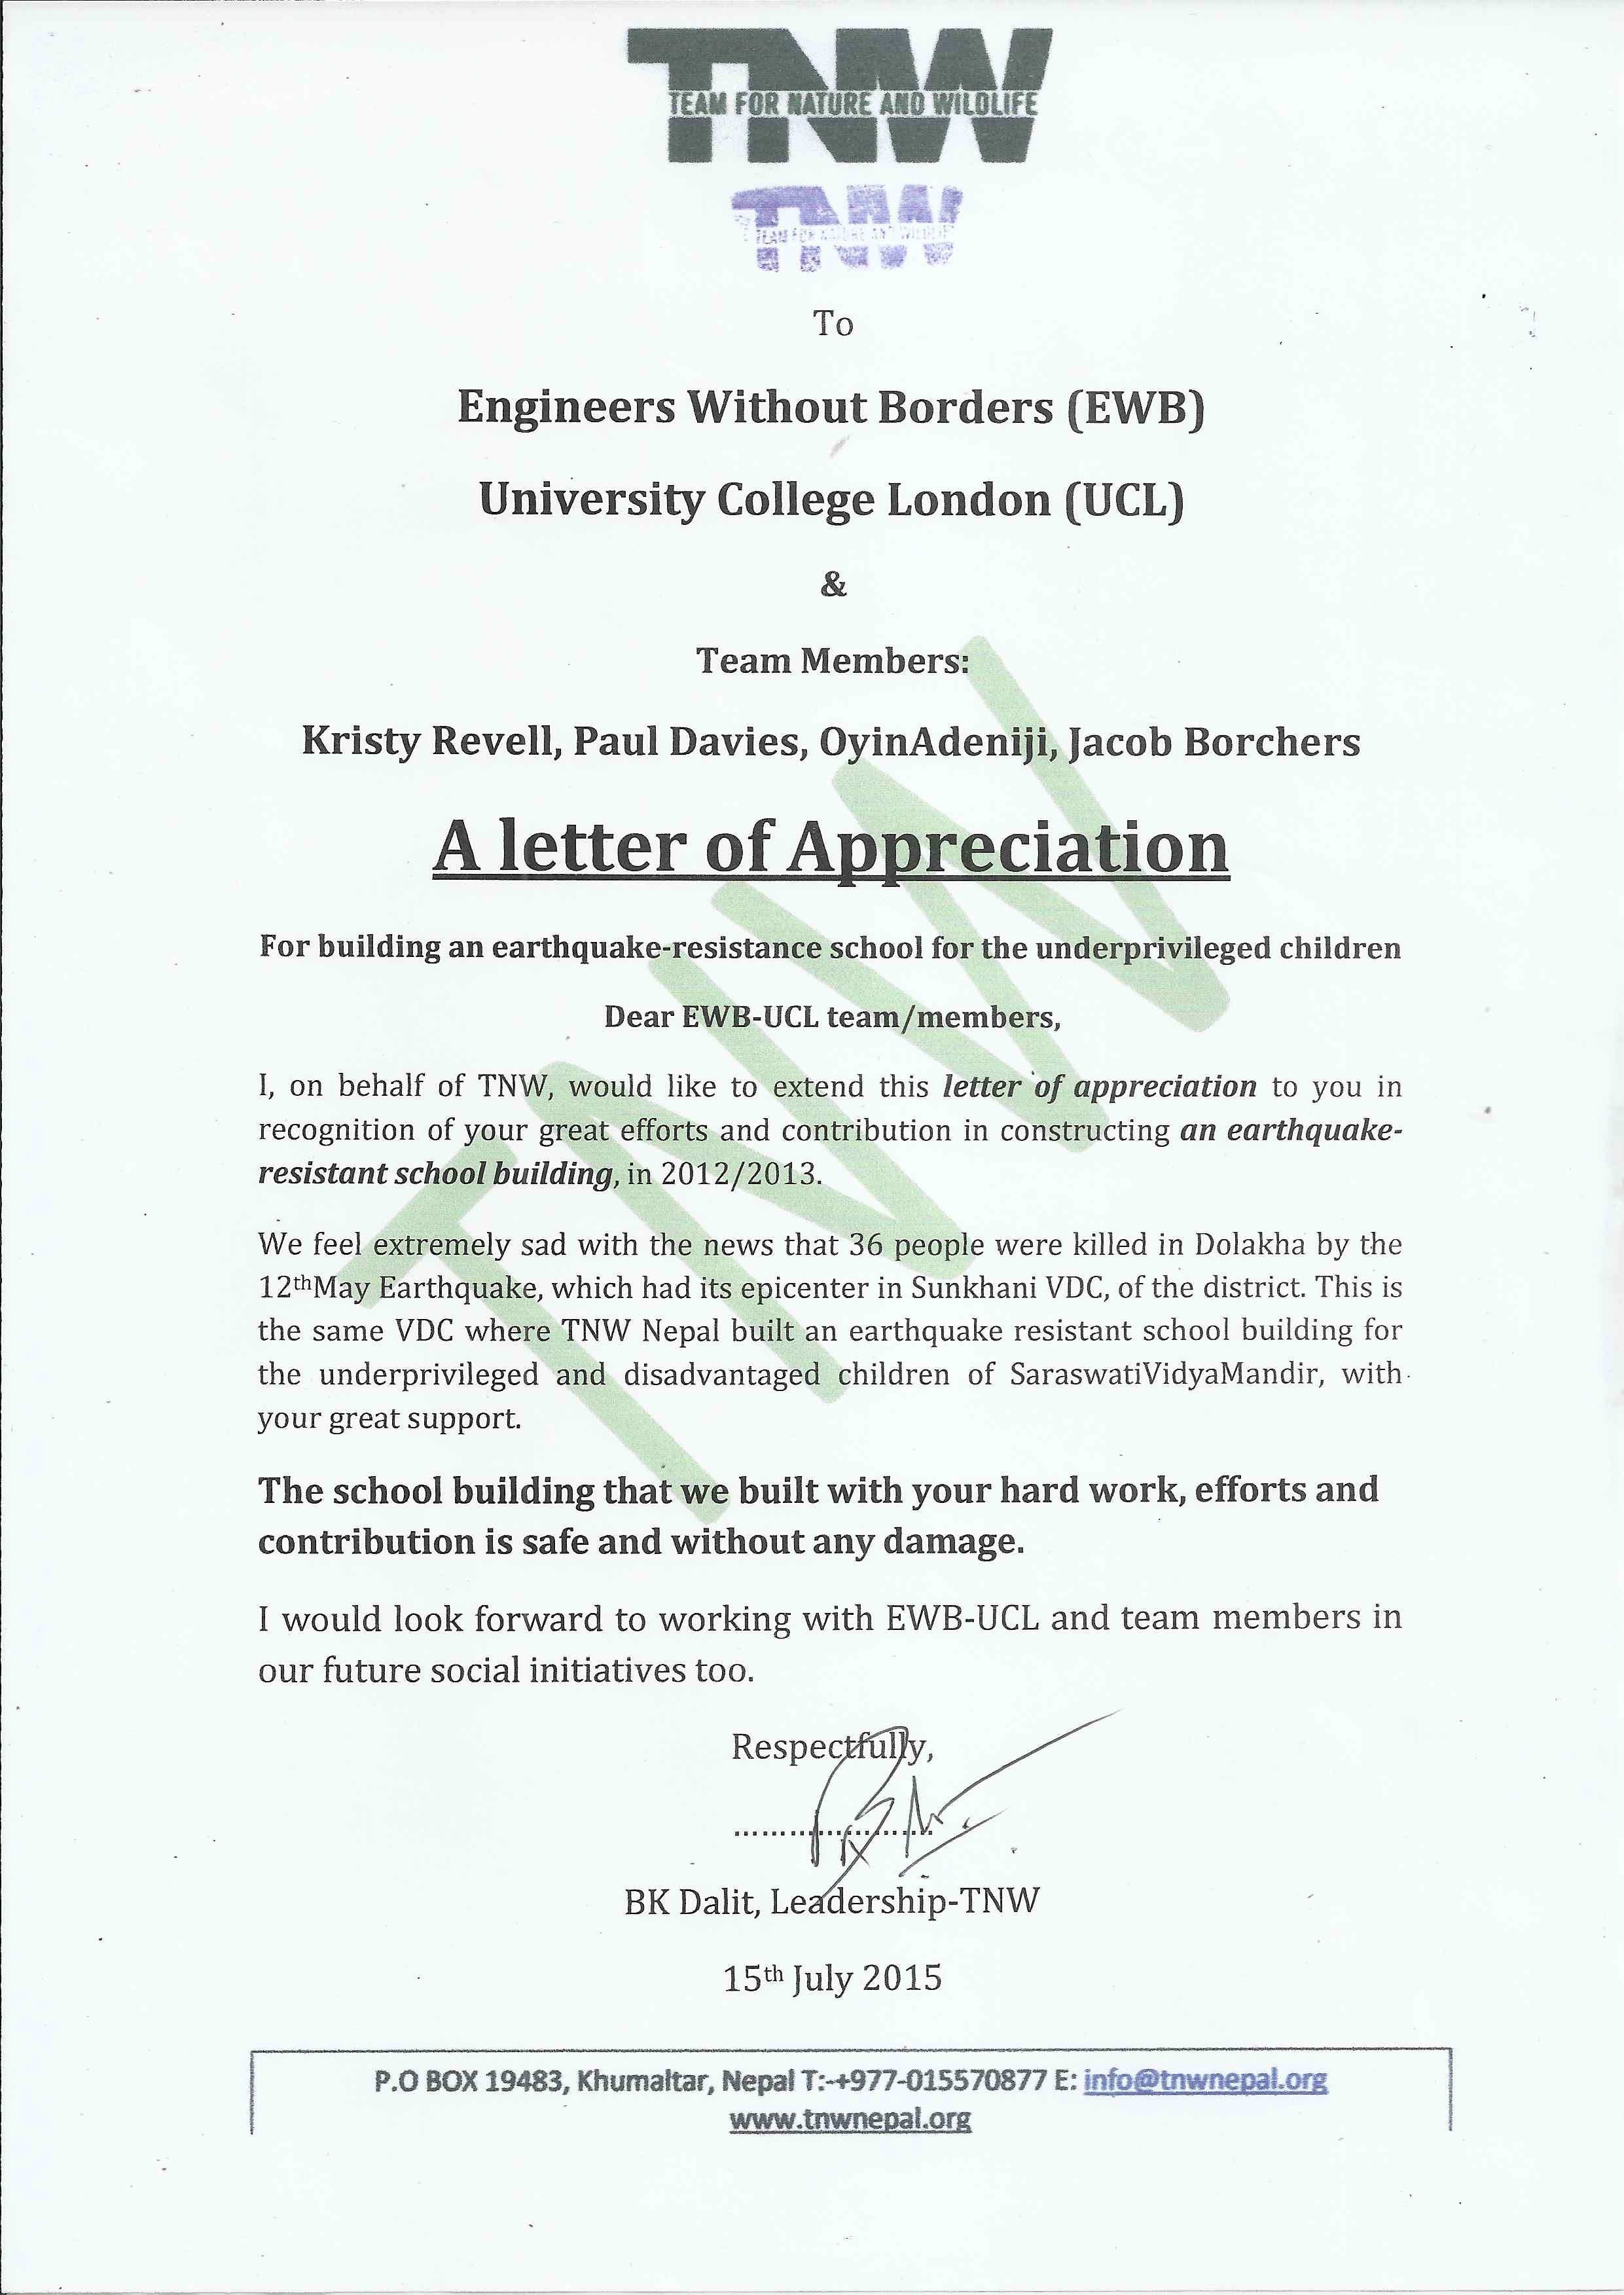 letter of appreciation sent to engineers out borders team for a letter of appreciation